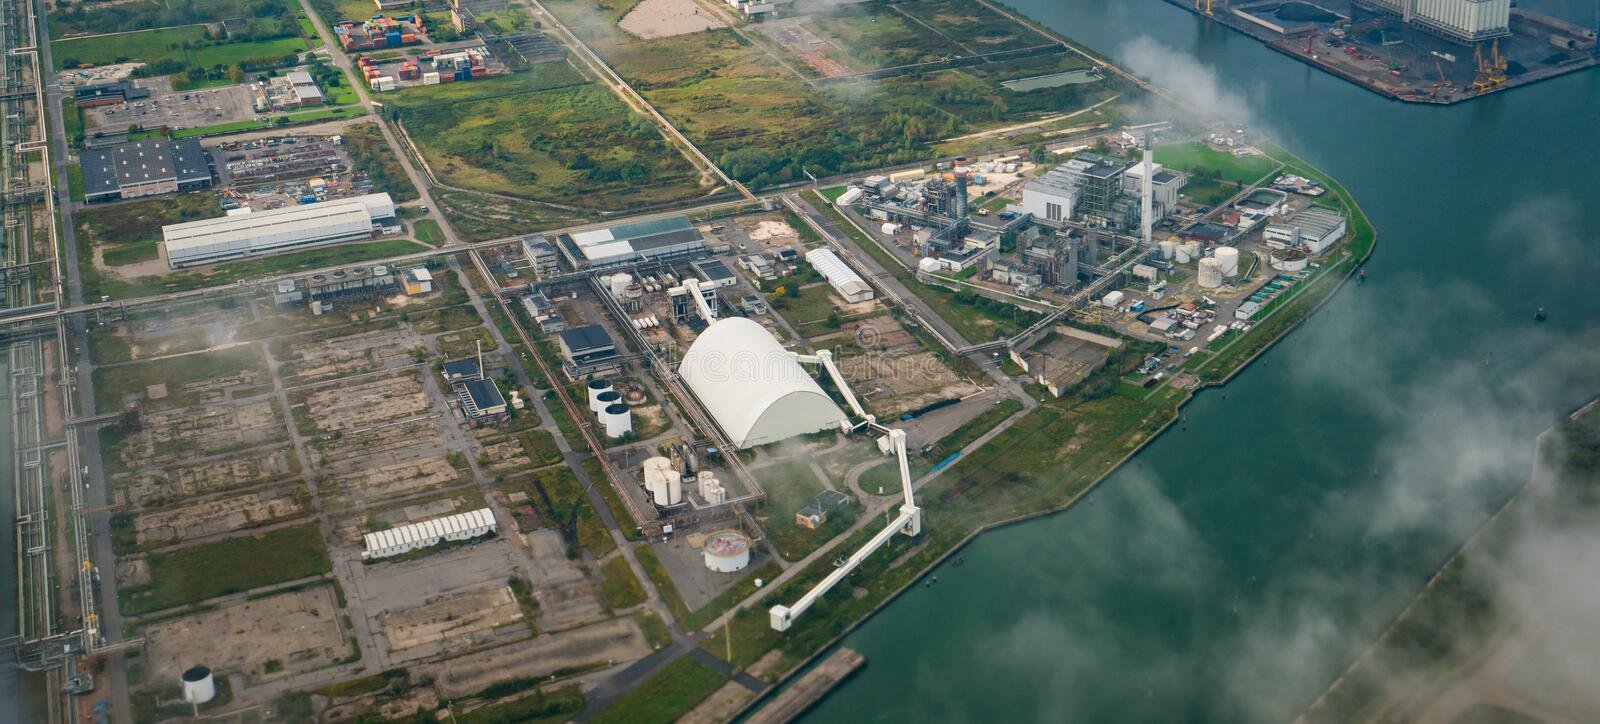 Aerial view of factories in industrial district stock photos